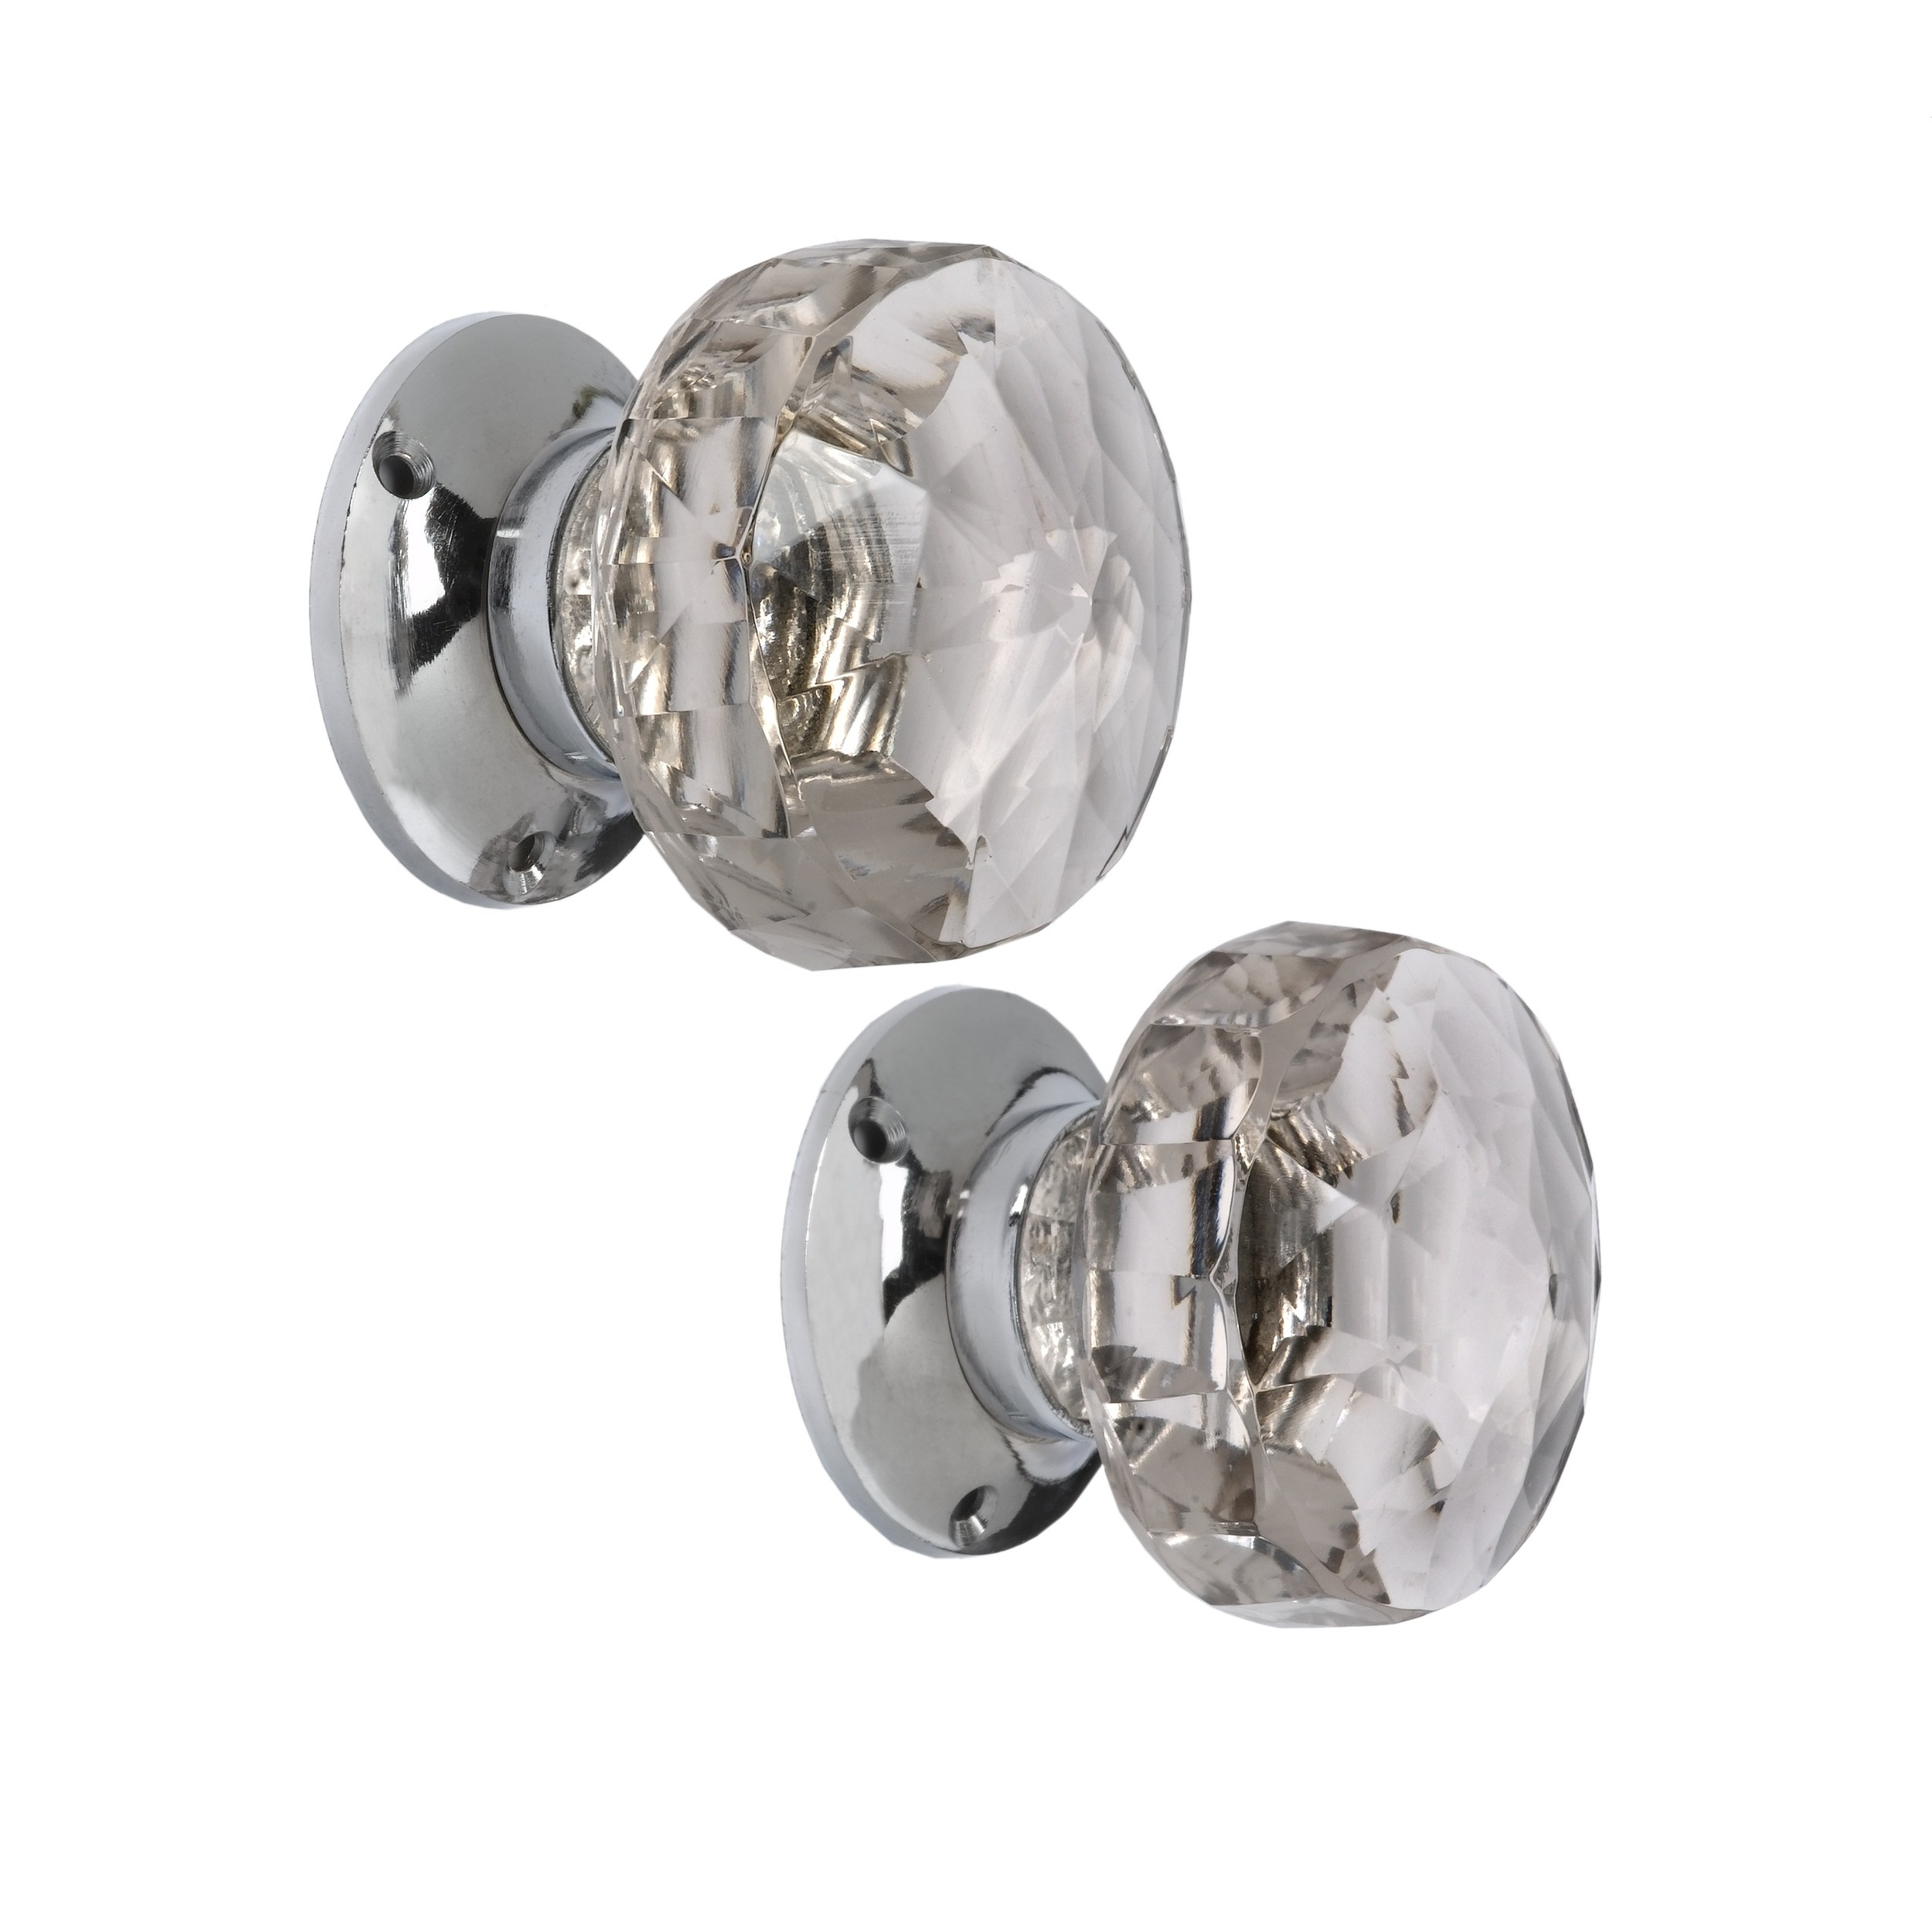 laura ashley door knobs photo - 1